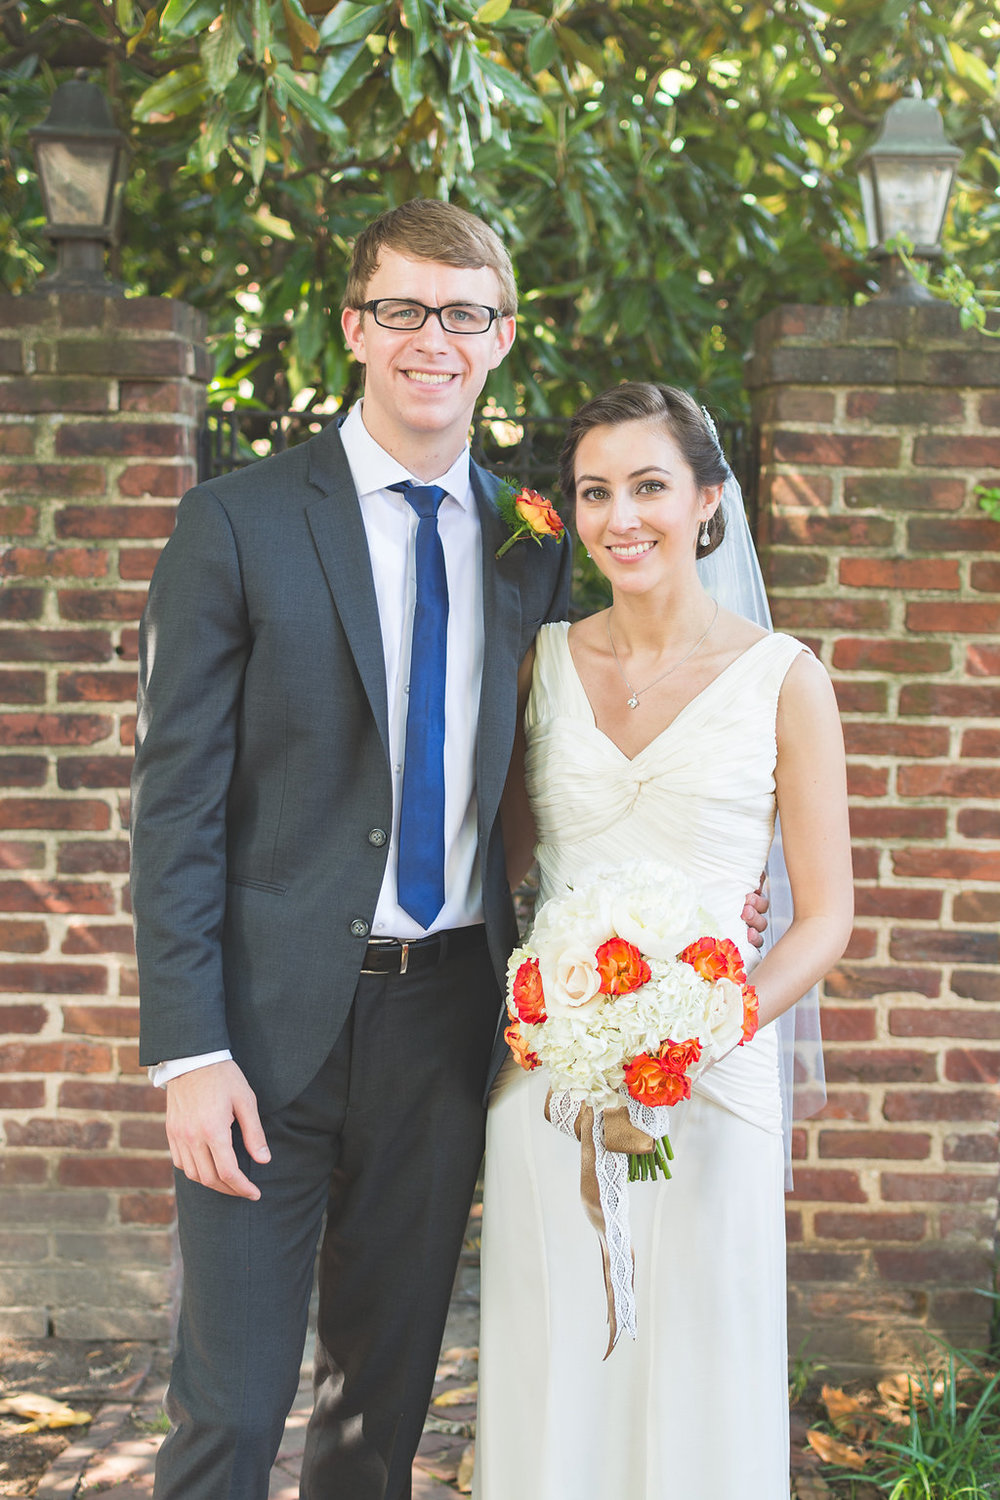 chic girl flowers bride groom wedding old town alexandria happy st mary catholic church